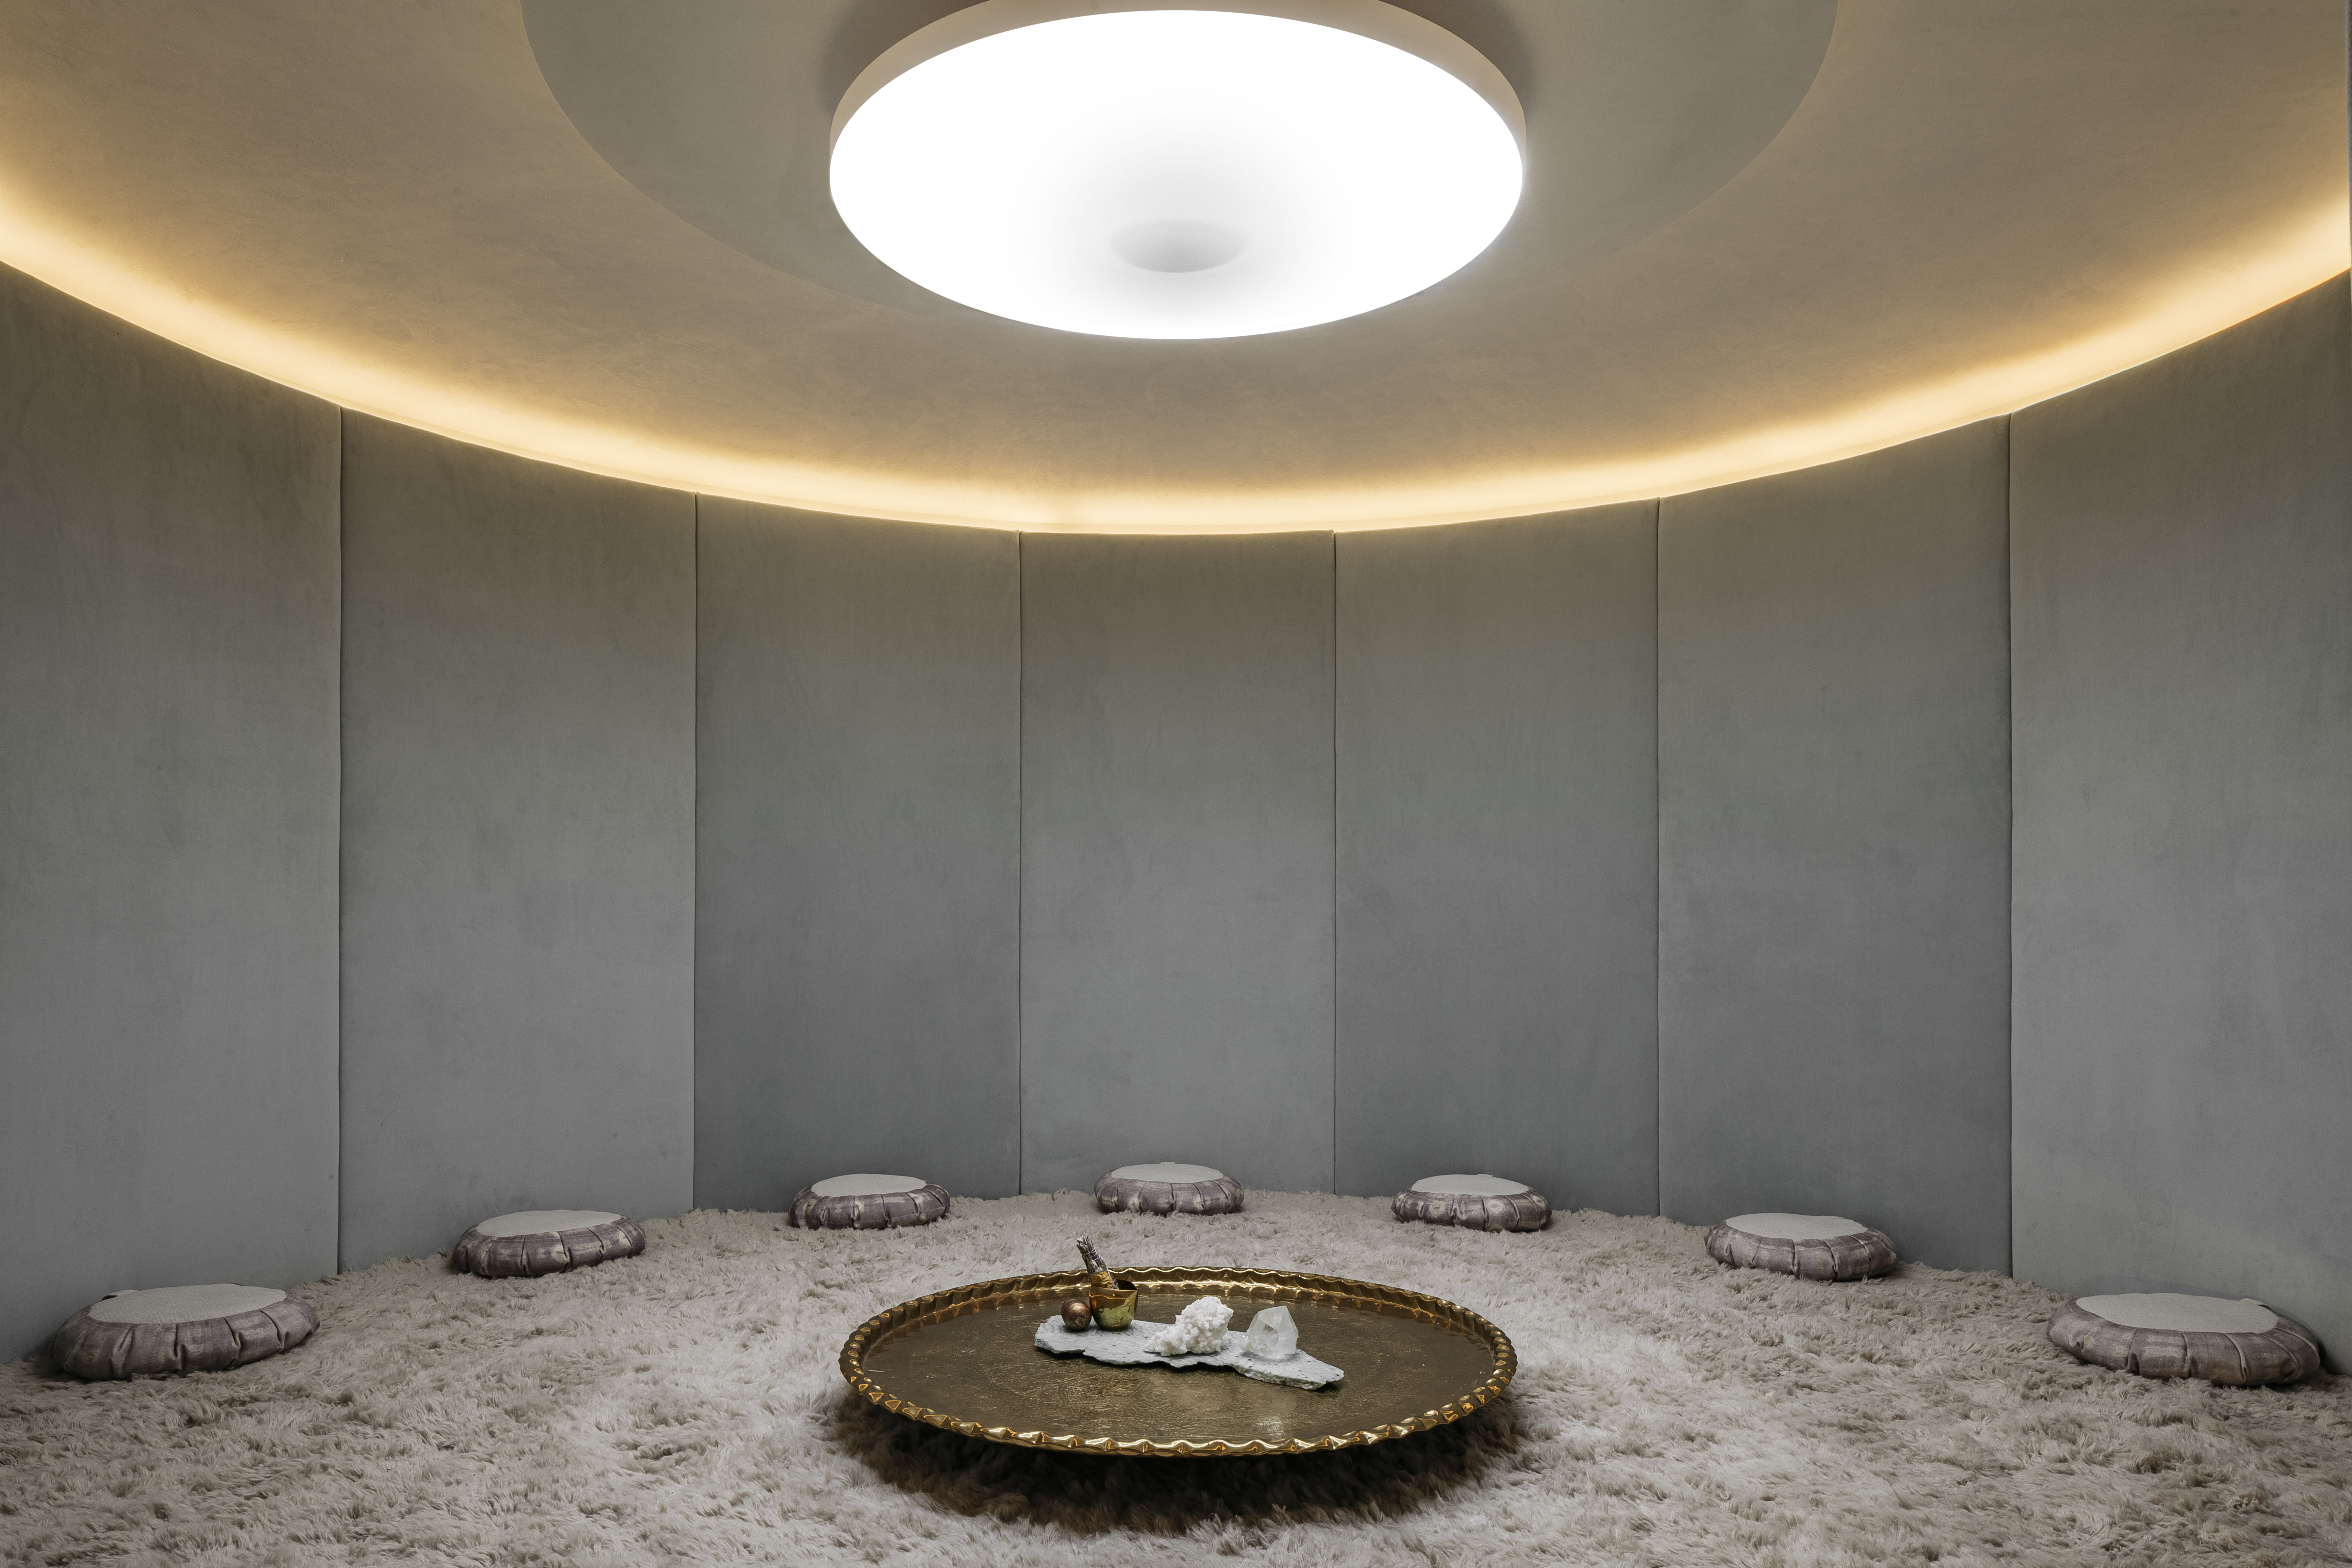 https://www.spectorgroup.com/wp-content/uploads/2020/03/Meditation-Room-Kris-Tamburello.jpg